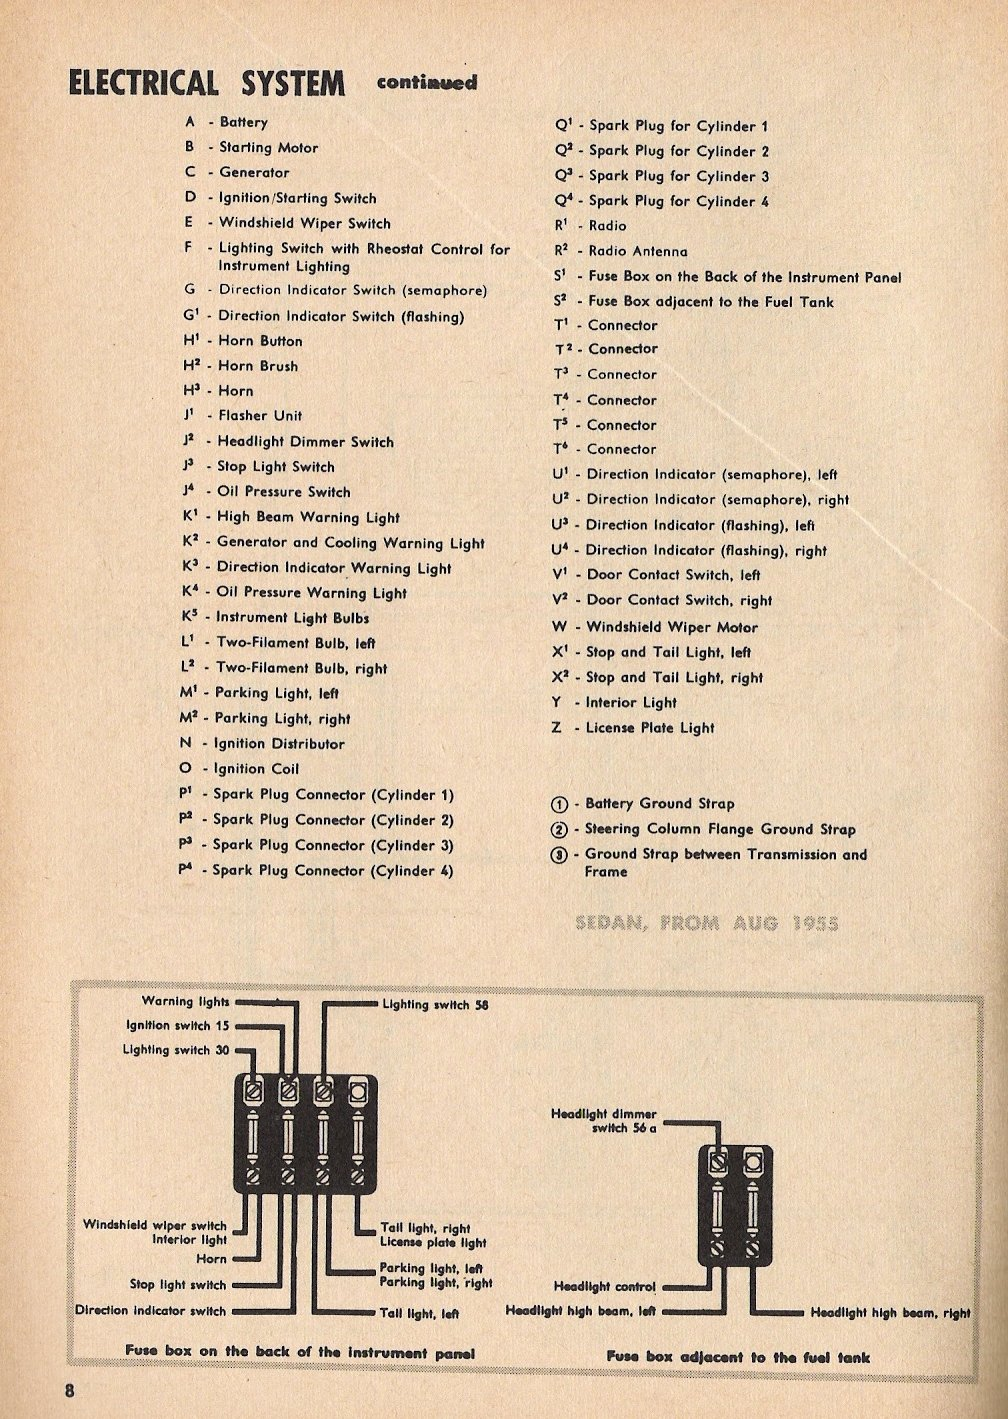 1955 beetle wiring diagram thegoldenbug com tags beetle